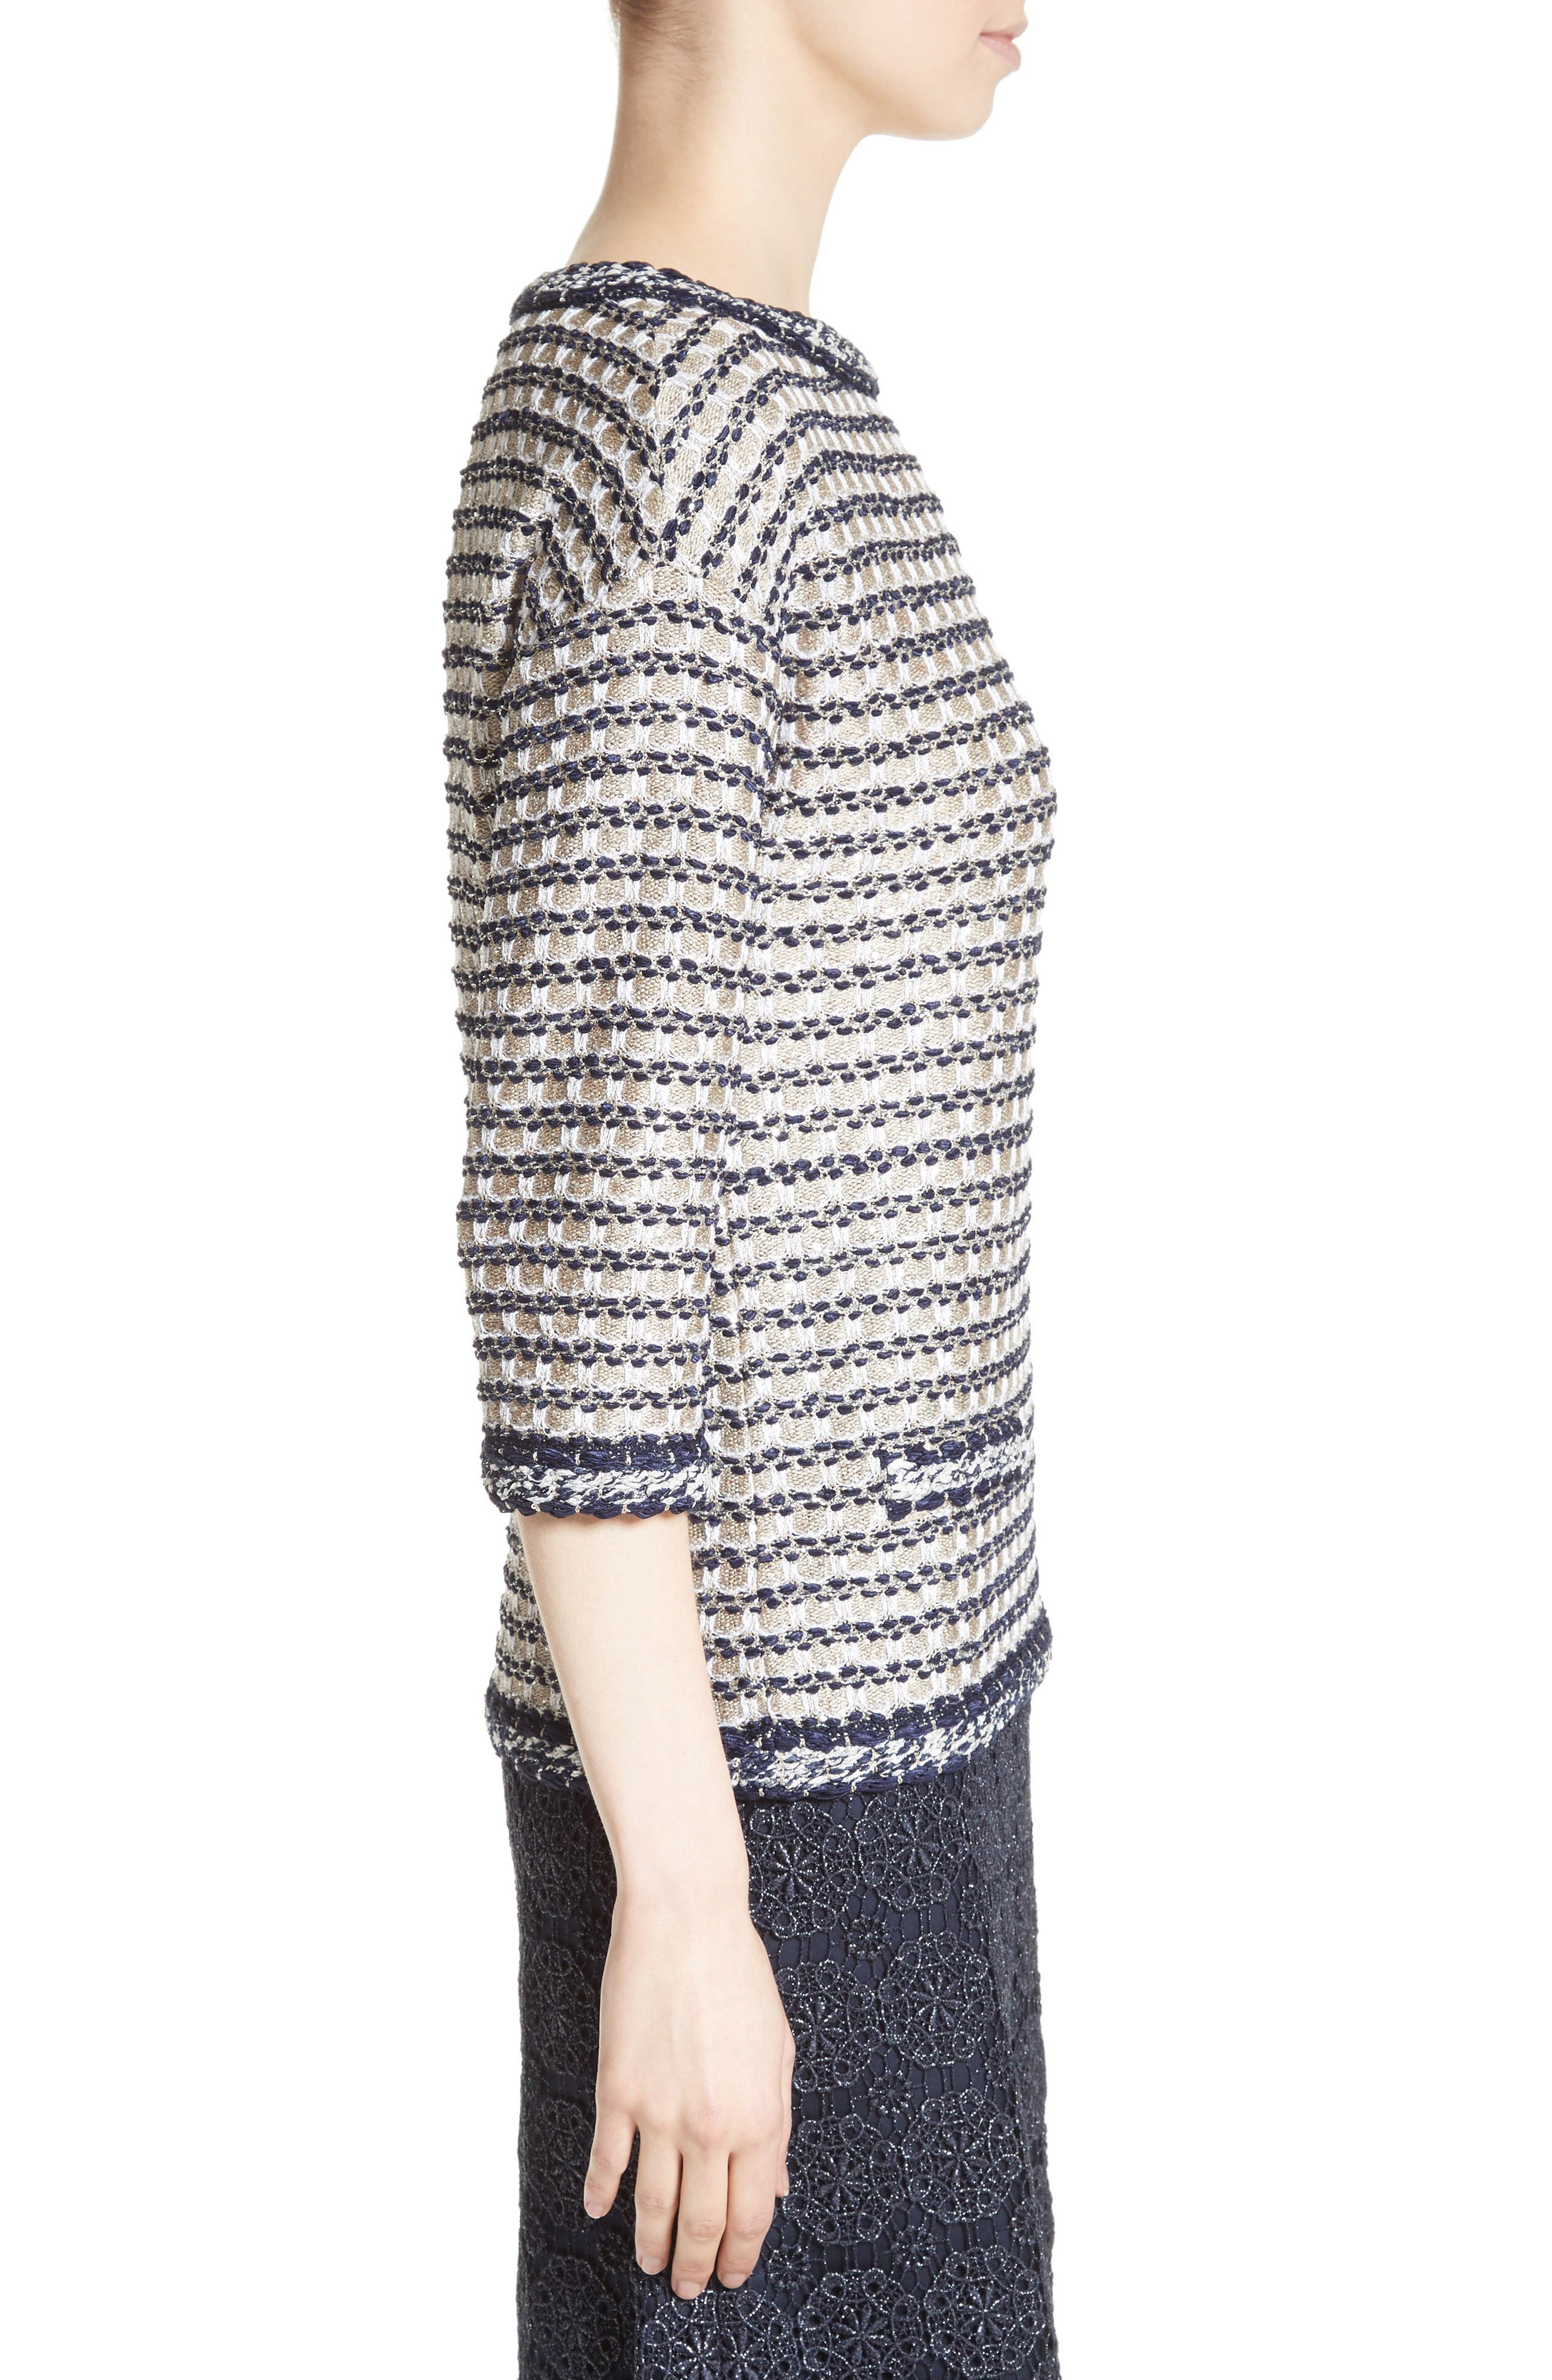 Vany Tweed Knit Top,                             Alternate thumbnail 3, color,                             Gold Multi